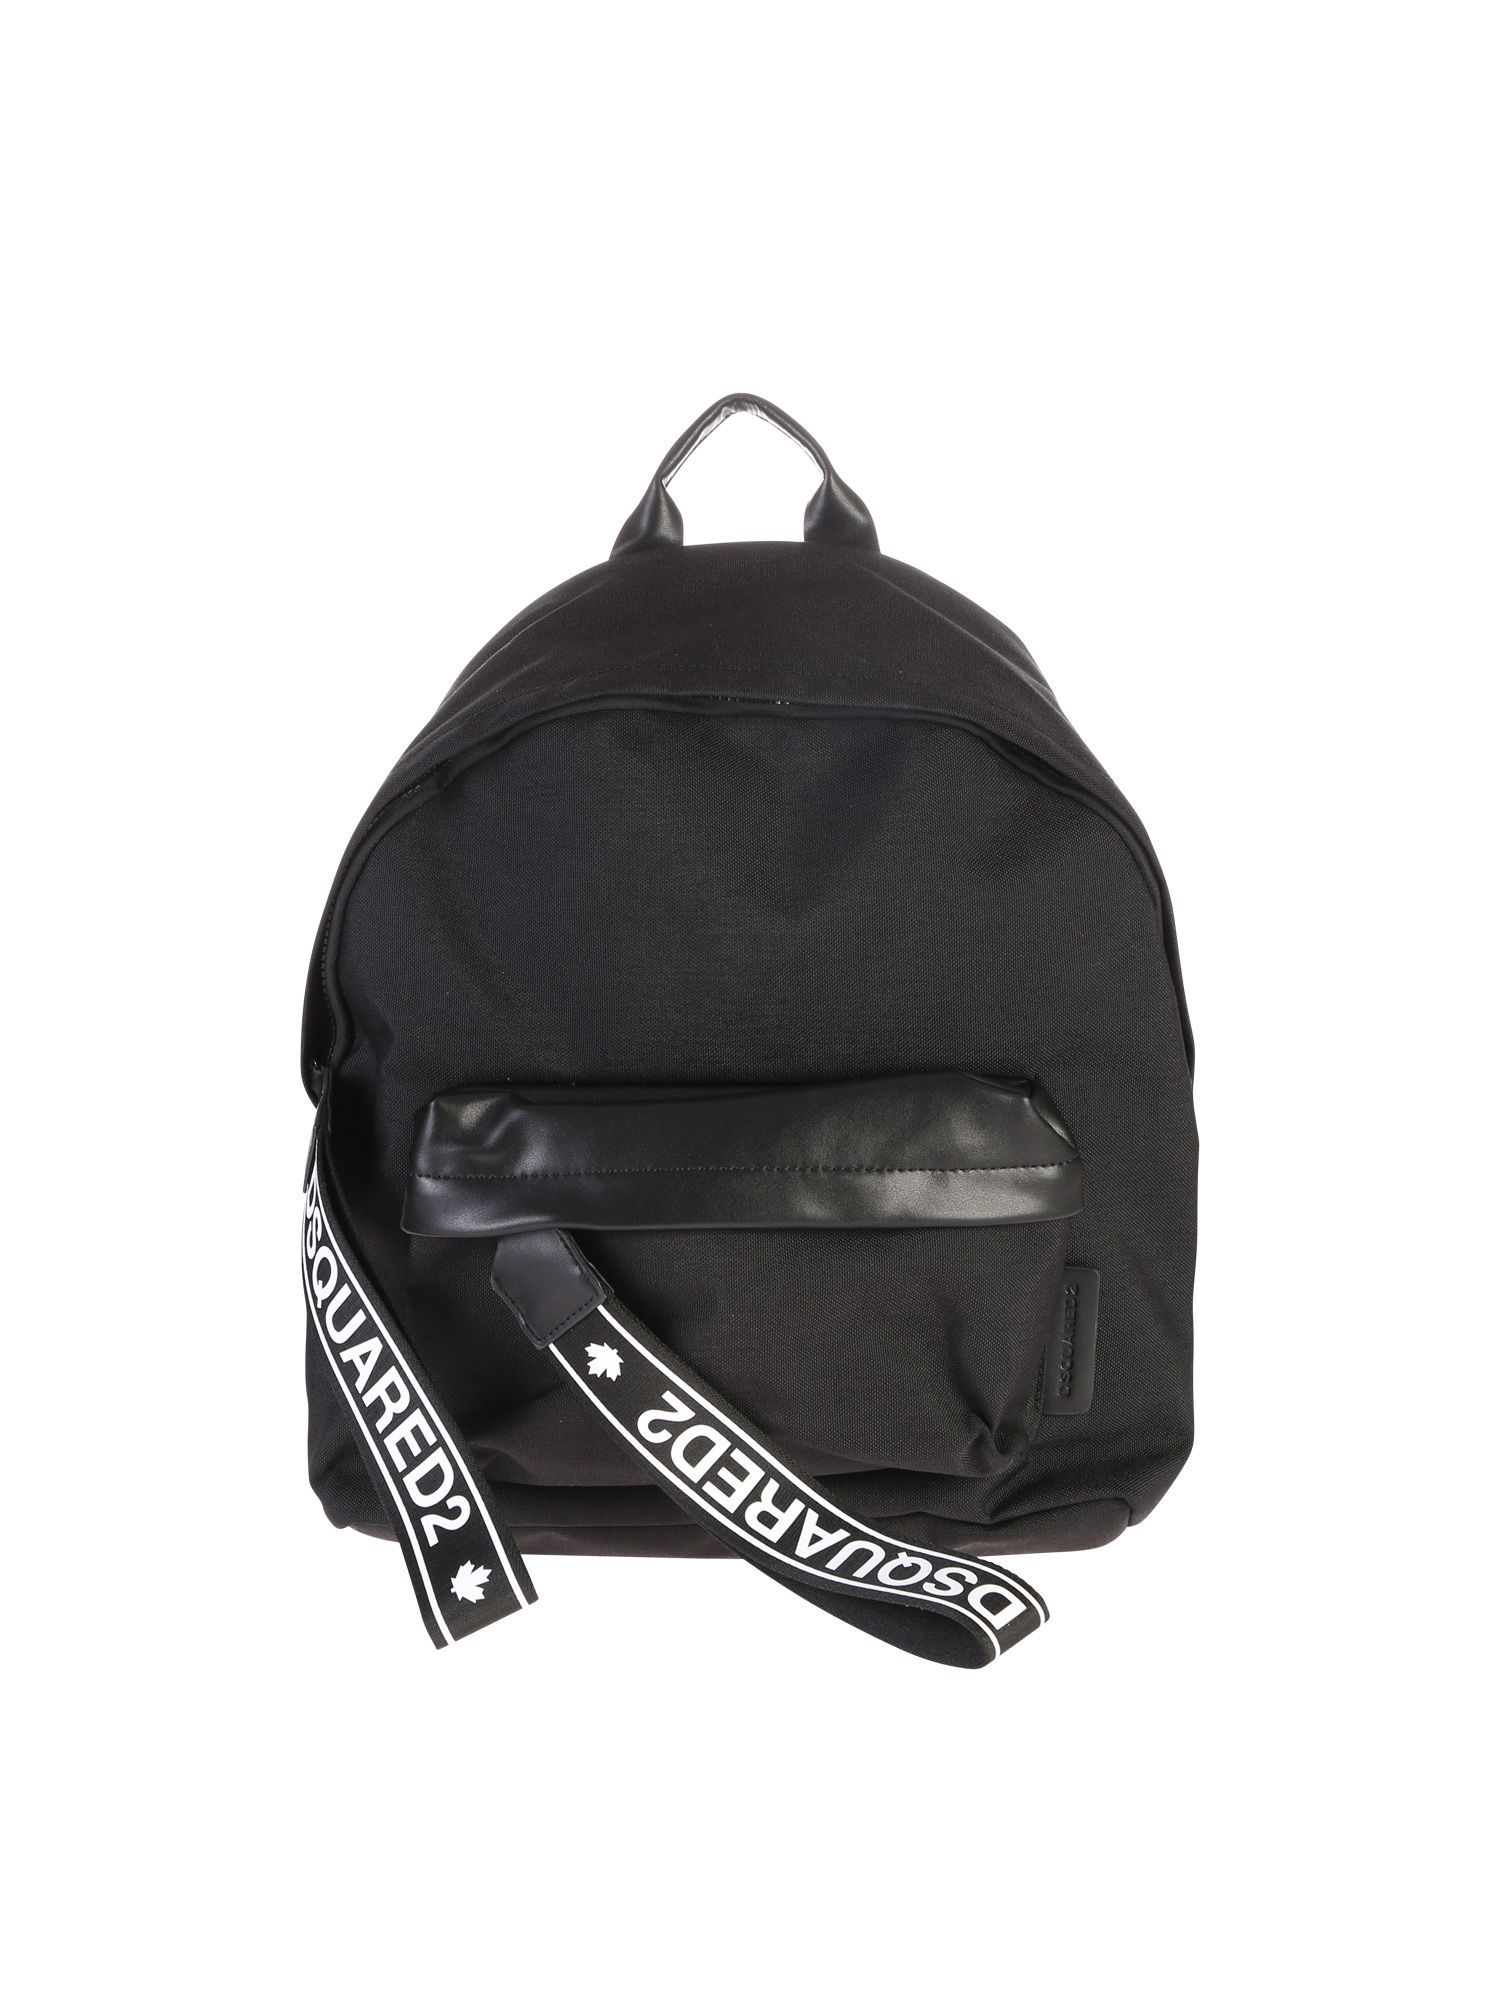 07361025df1e DSQUARED2 BLACK BRANDED BACKPACK.  dsquared2  bags  leather  polyester   nylon  backpacks